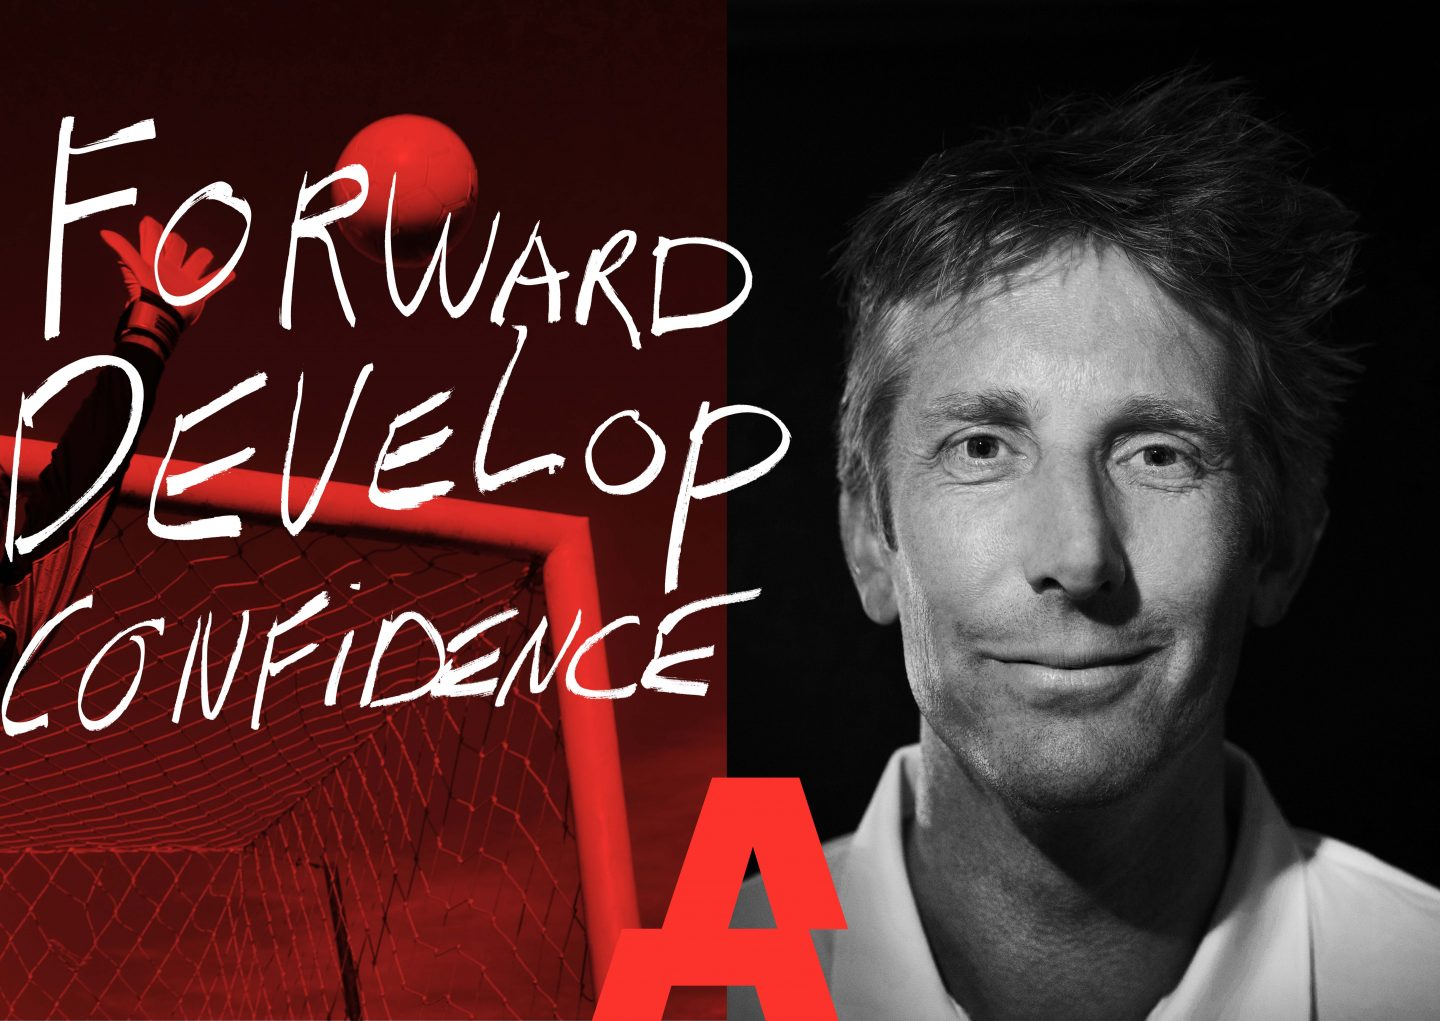 Edwin van der Sar CEO of Ajax Amsterdam reveals his secret to success in interview with GamePlan A, forward, develop, confidence, performance, Ajax Amsterdam, football, goal keeper, dutch national team, adidas, GamePlan A